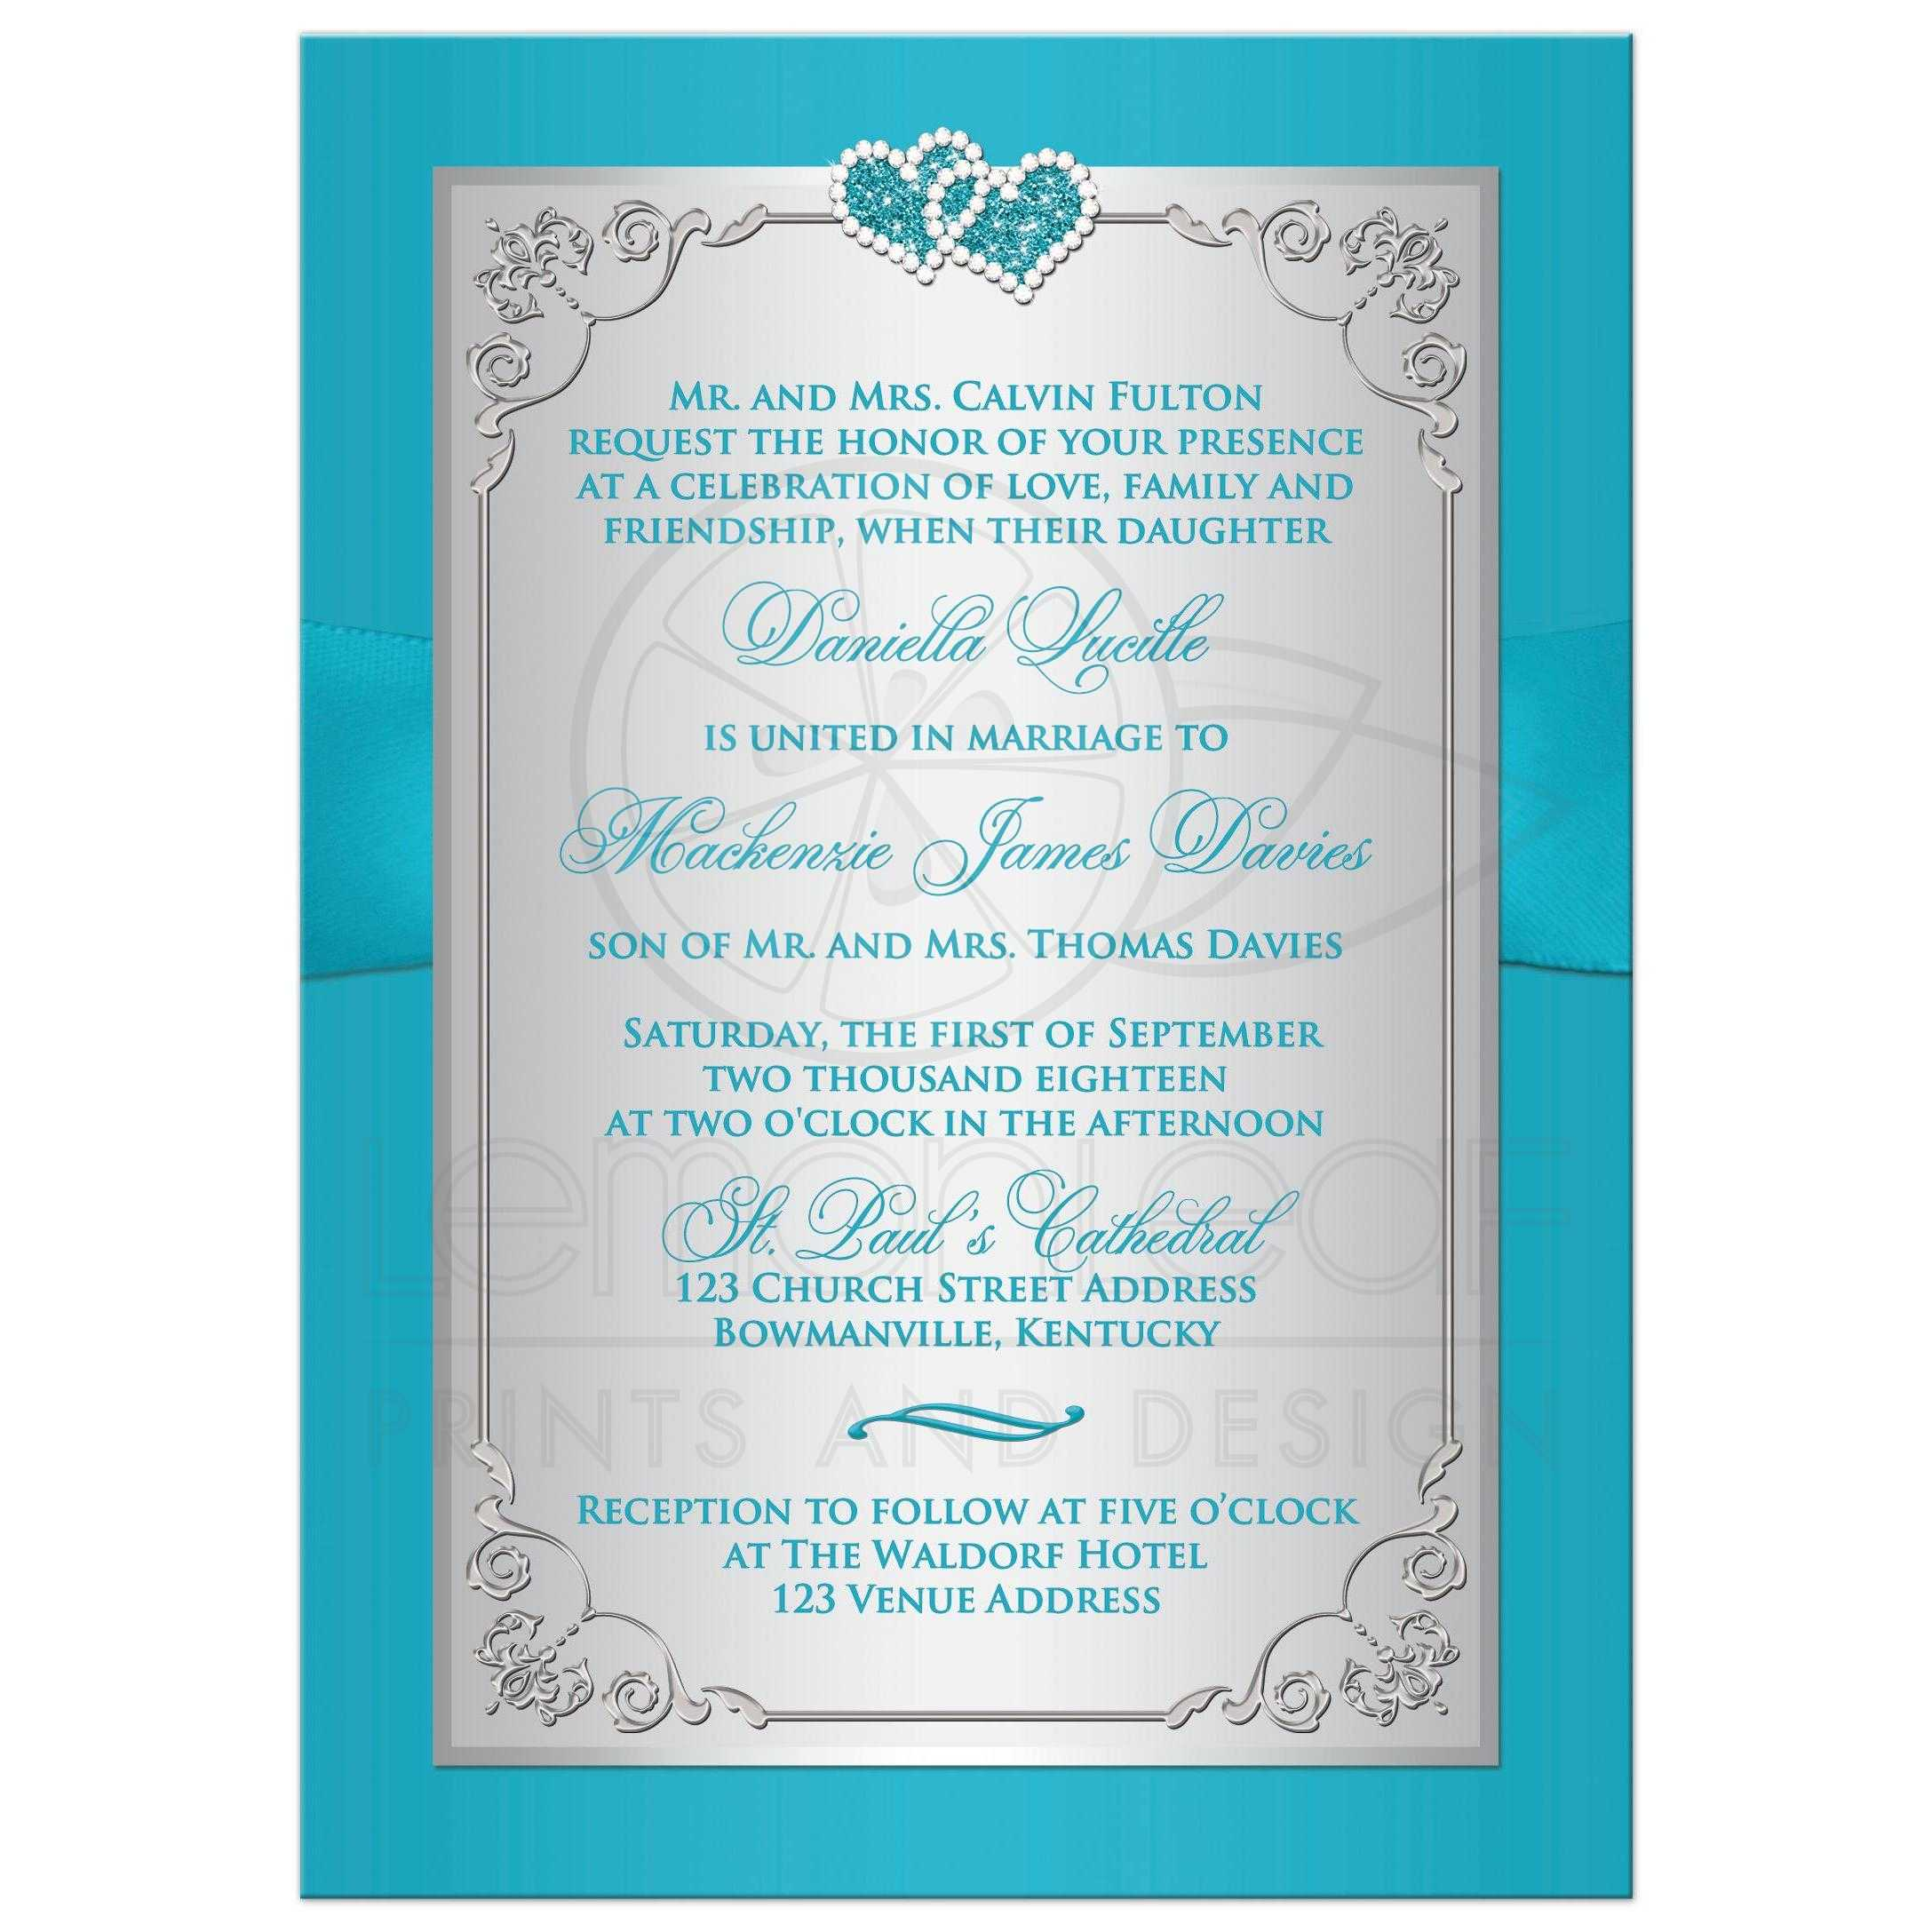 Formal Birthday Invitations is awesome invitations template